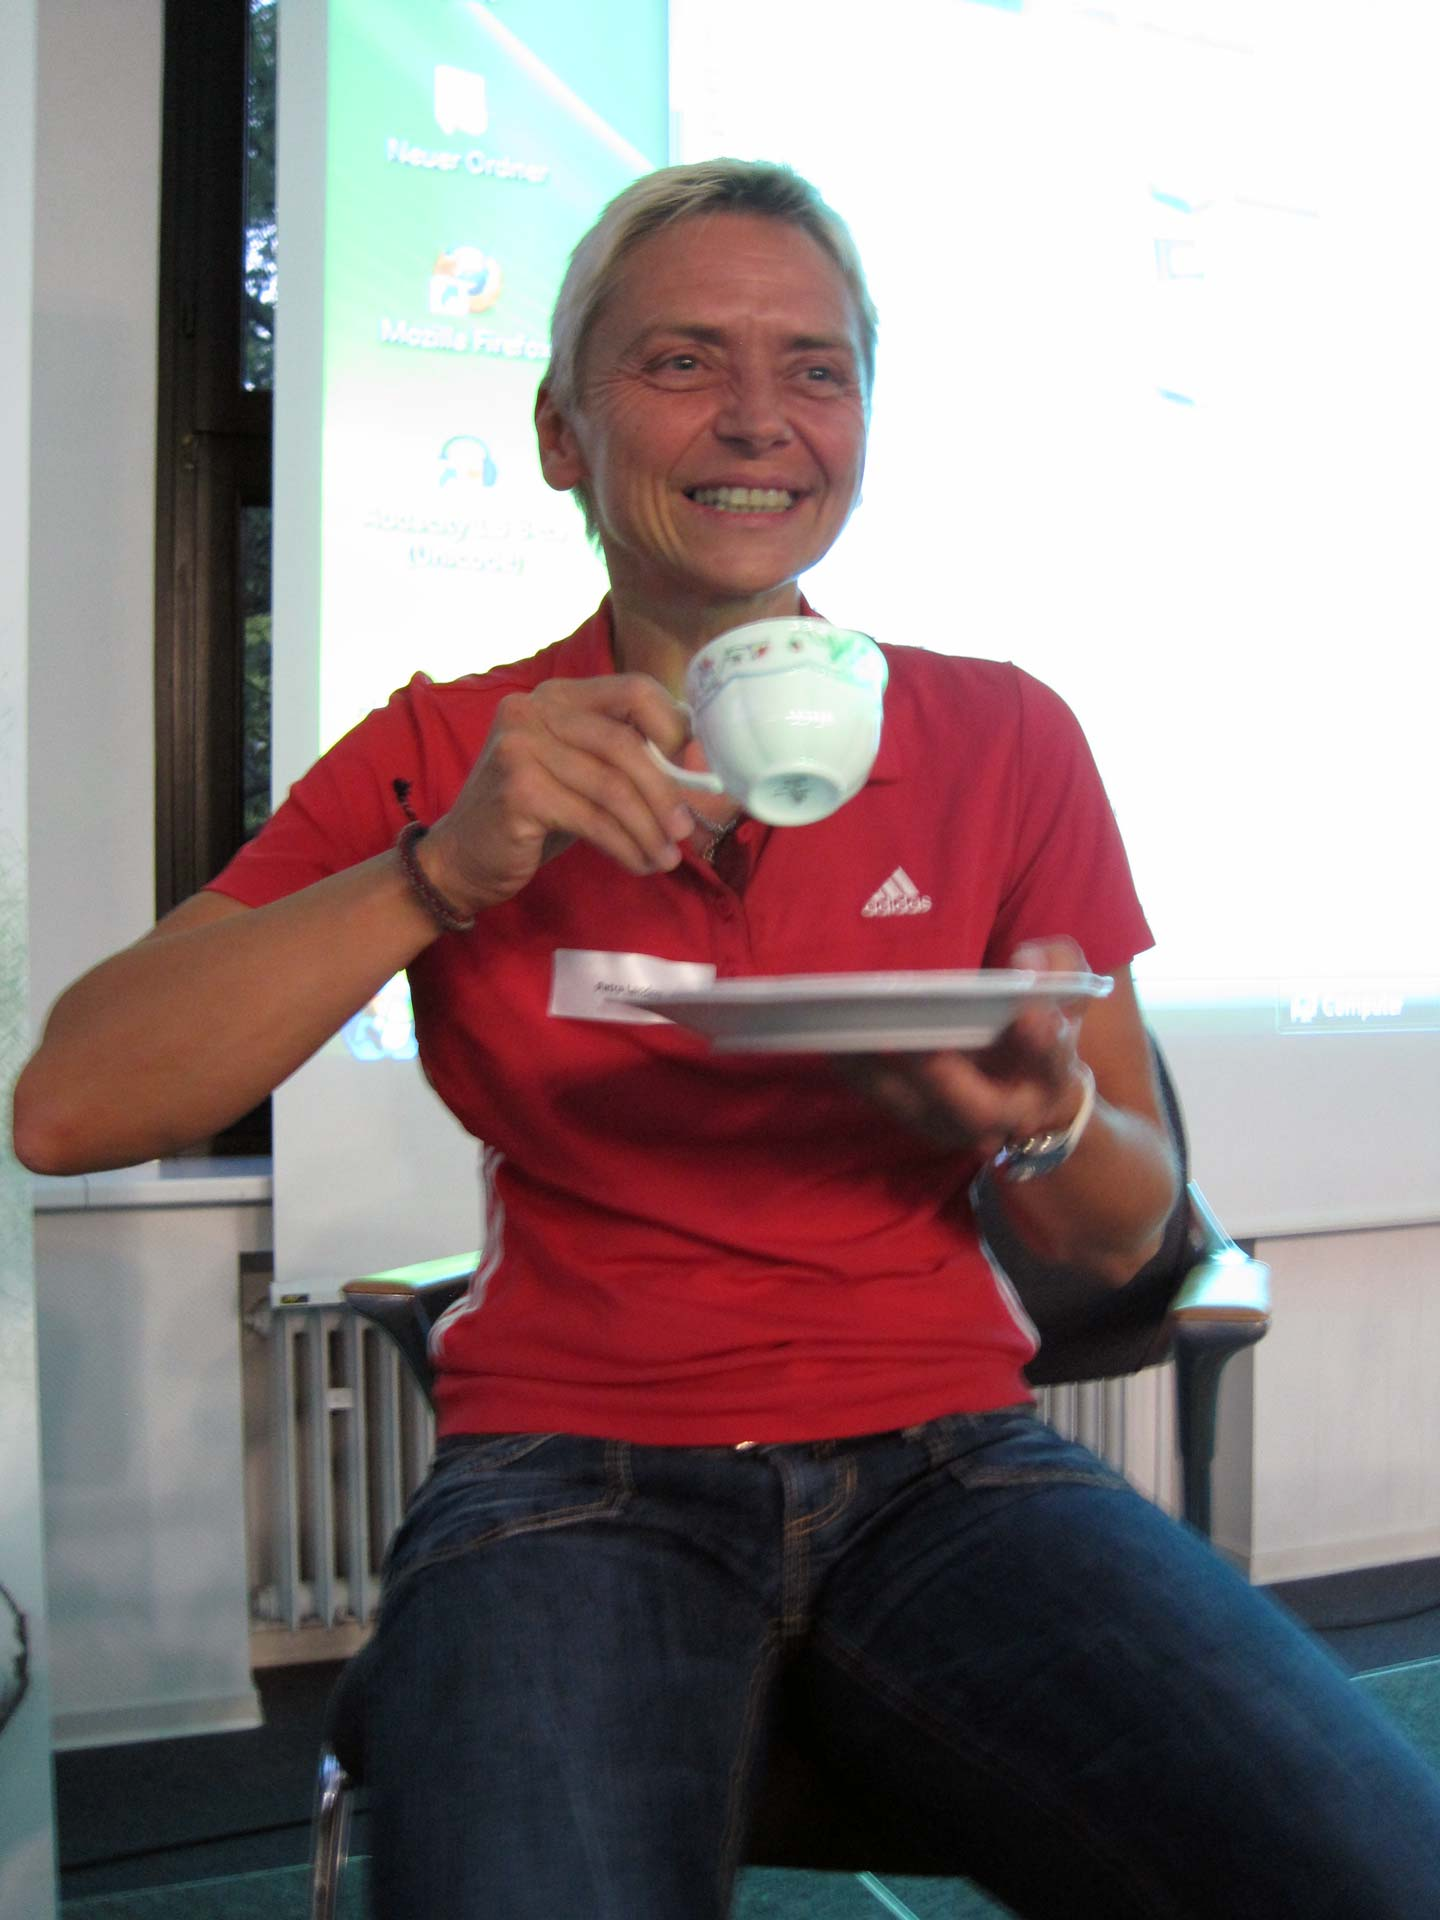 Petra Landers with the tea set she received upon winning the Euro's in 1989 (Photo: Flickr, Heinrich-Böll-Stiftung).